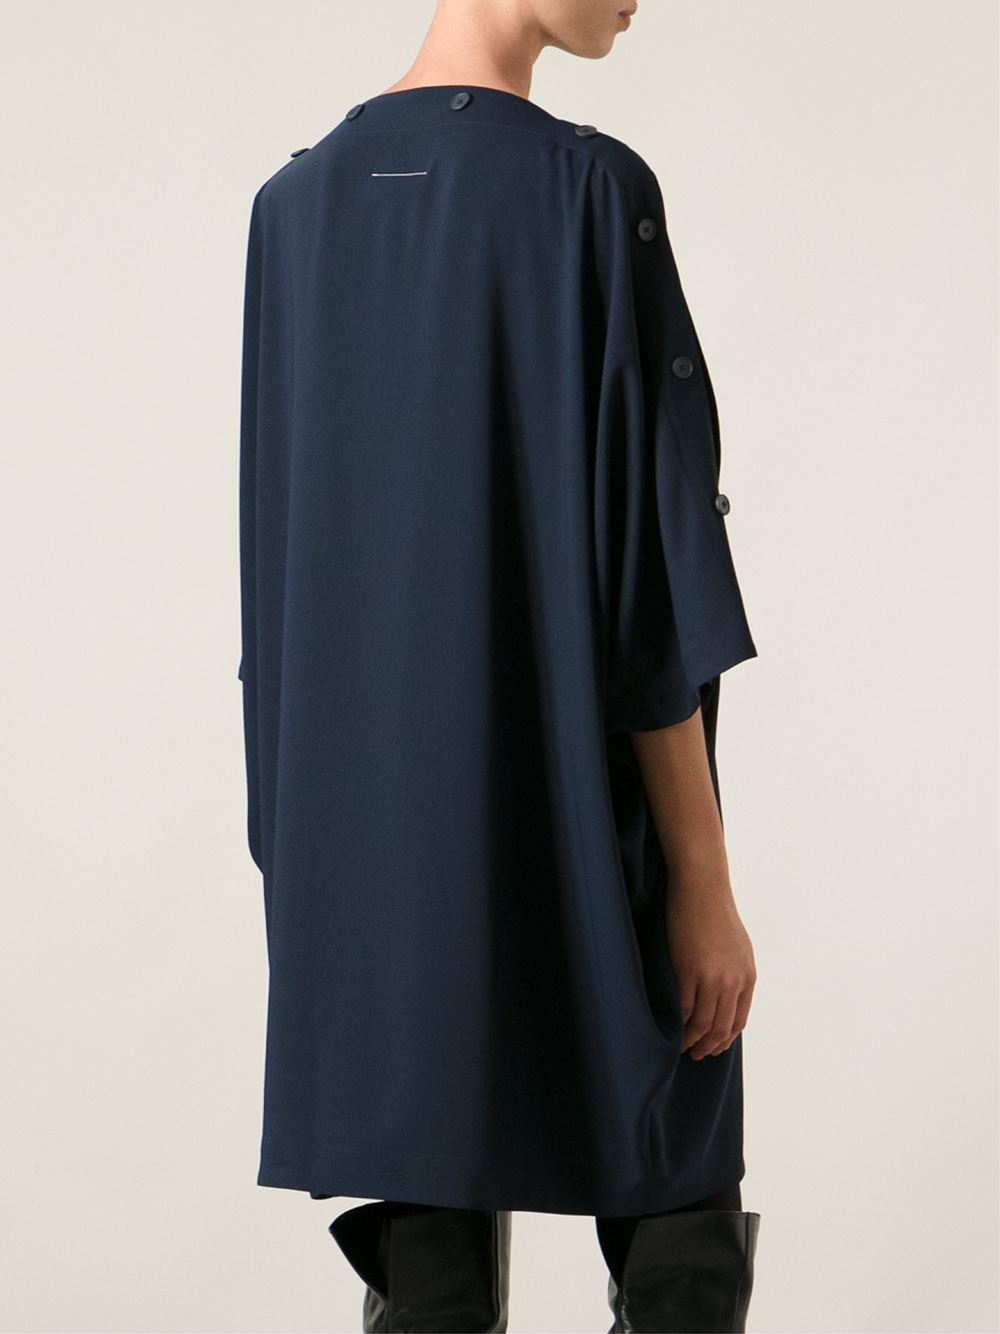 Lyst mm6 by maison martin margiela oversized dress in blue for Mm6 maison margiela